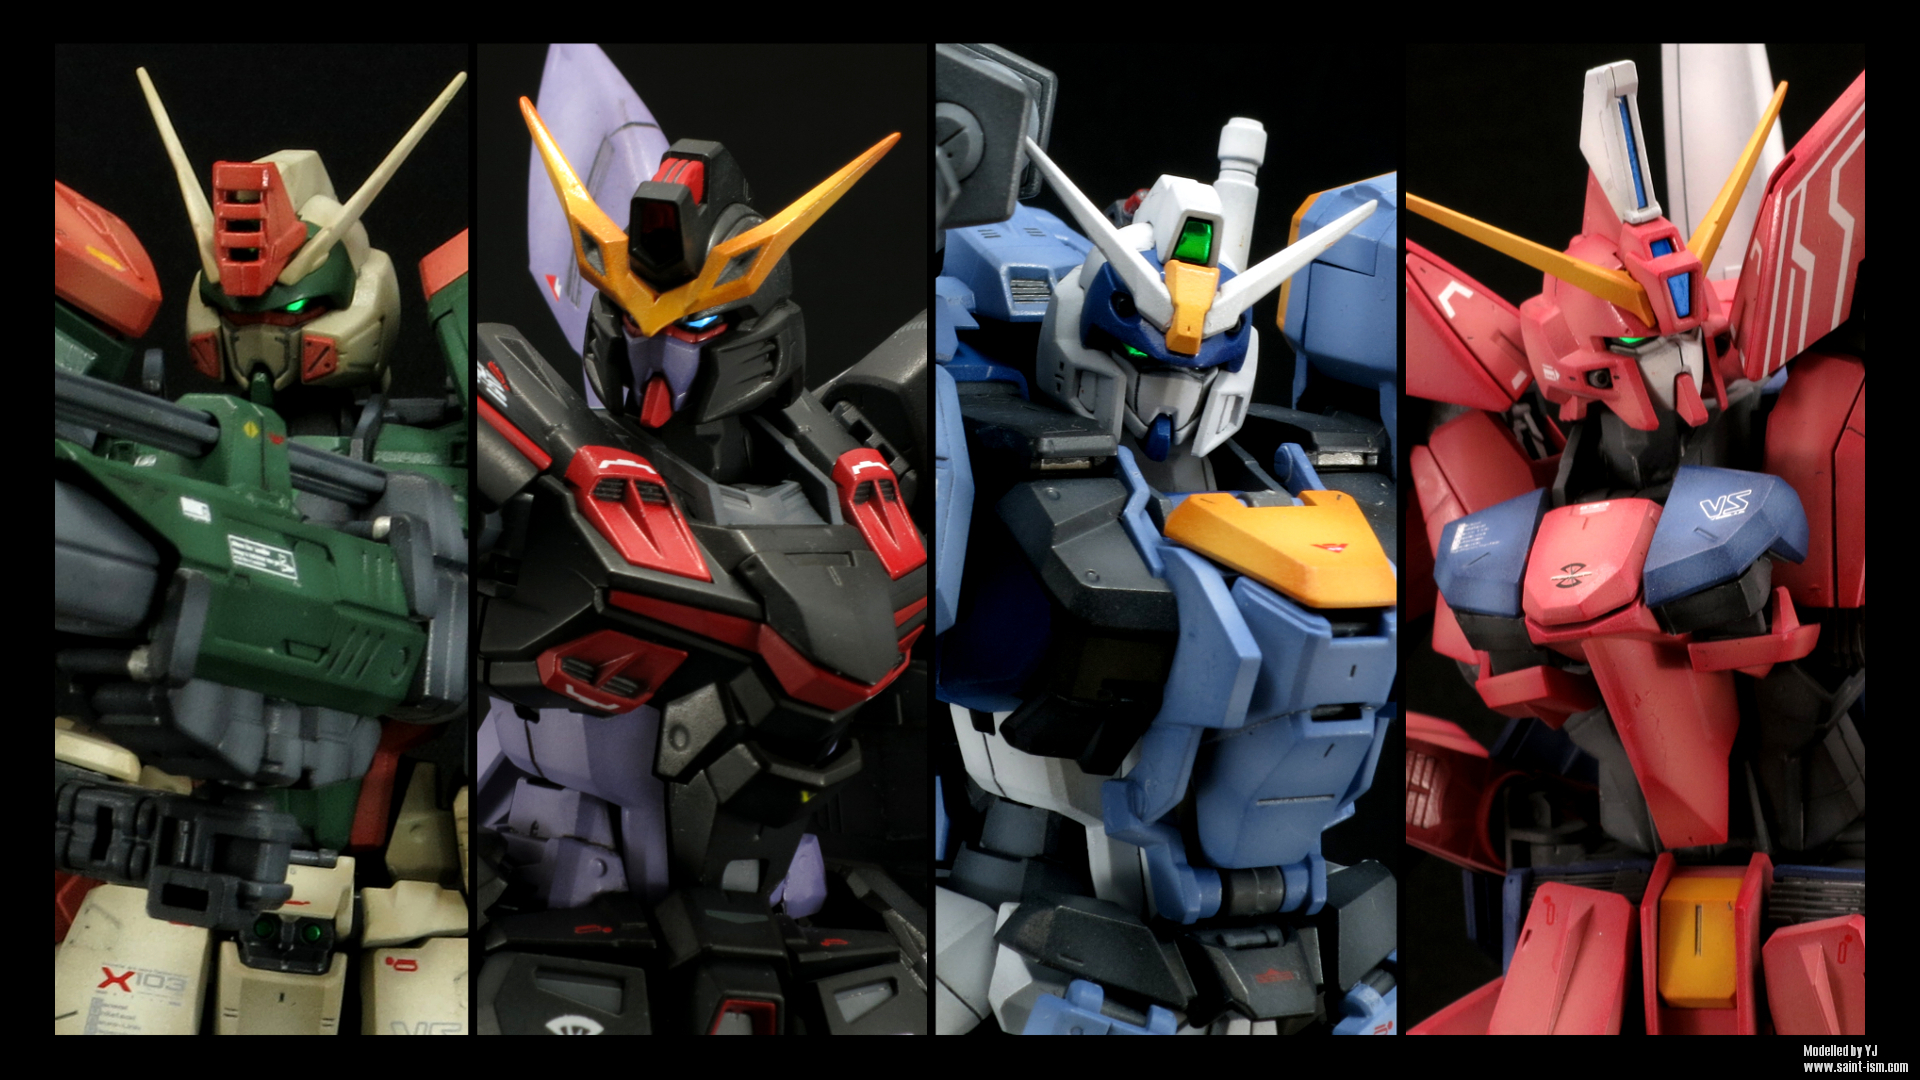 MG ZAFT G Project Gundam Wallpaper Saint ism Gaming 1920x1080